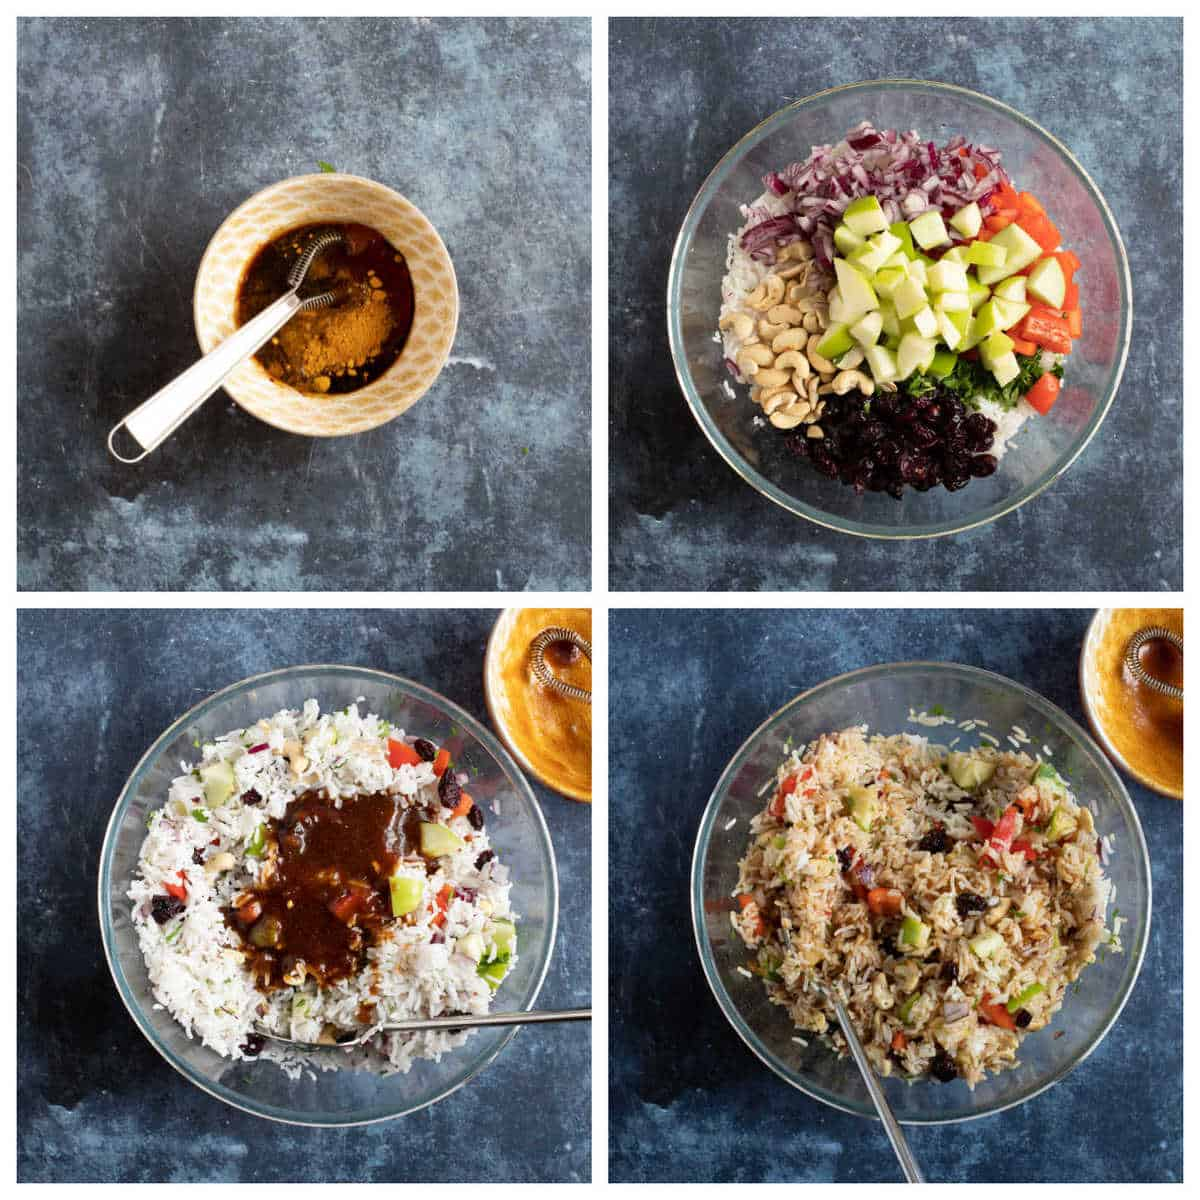 Step by step photo collage showing how to make the easy rice salad.